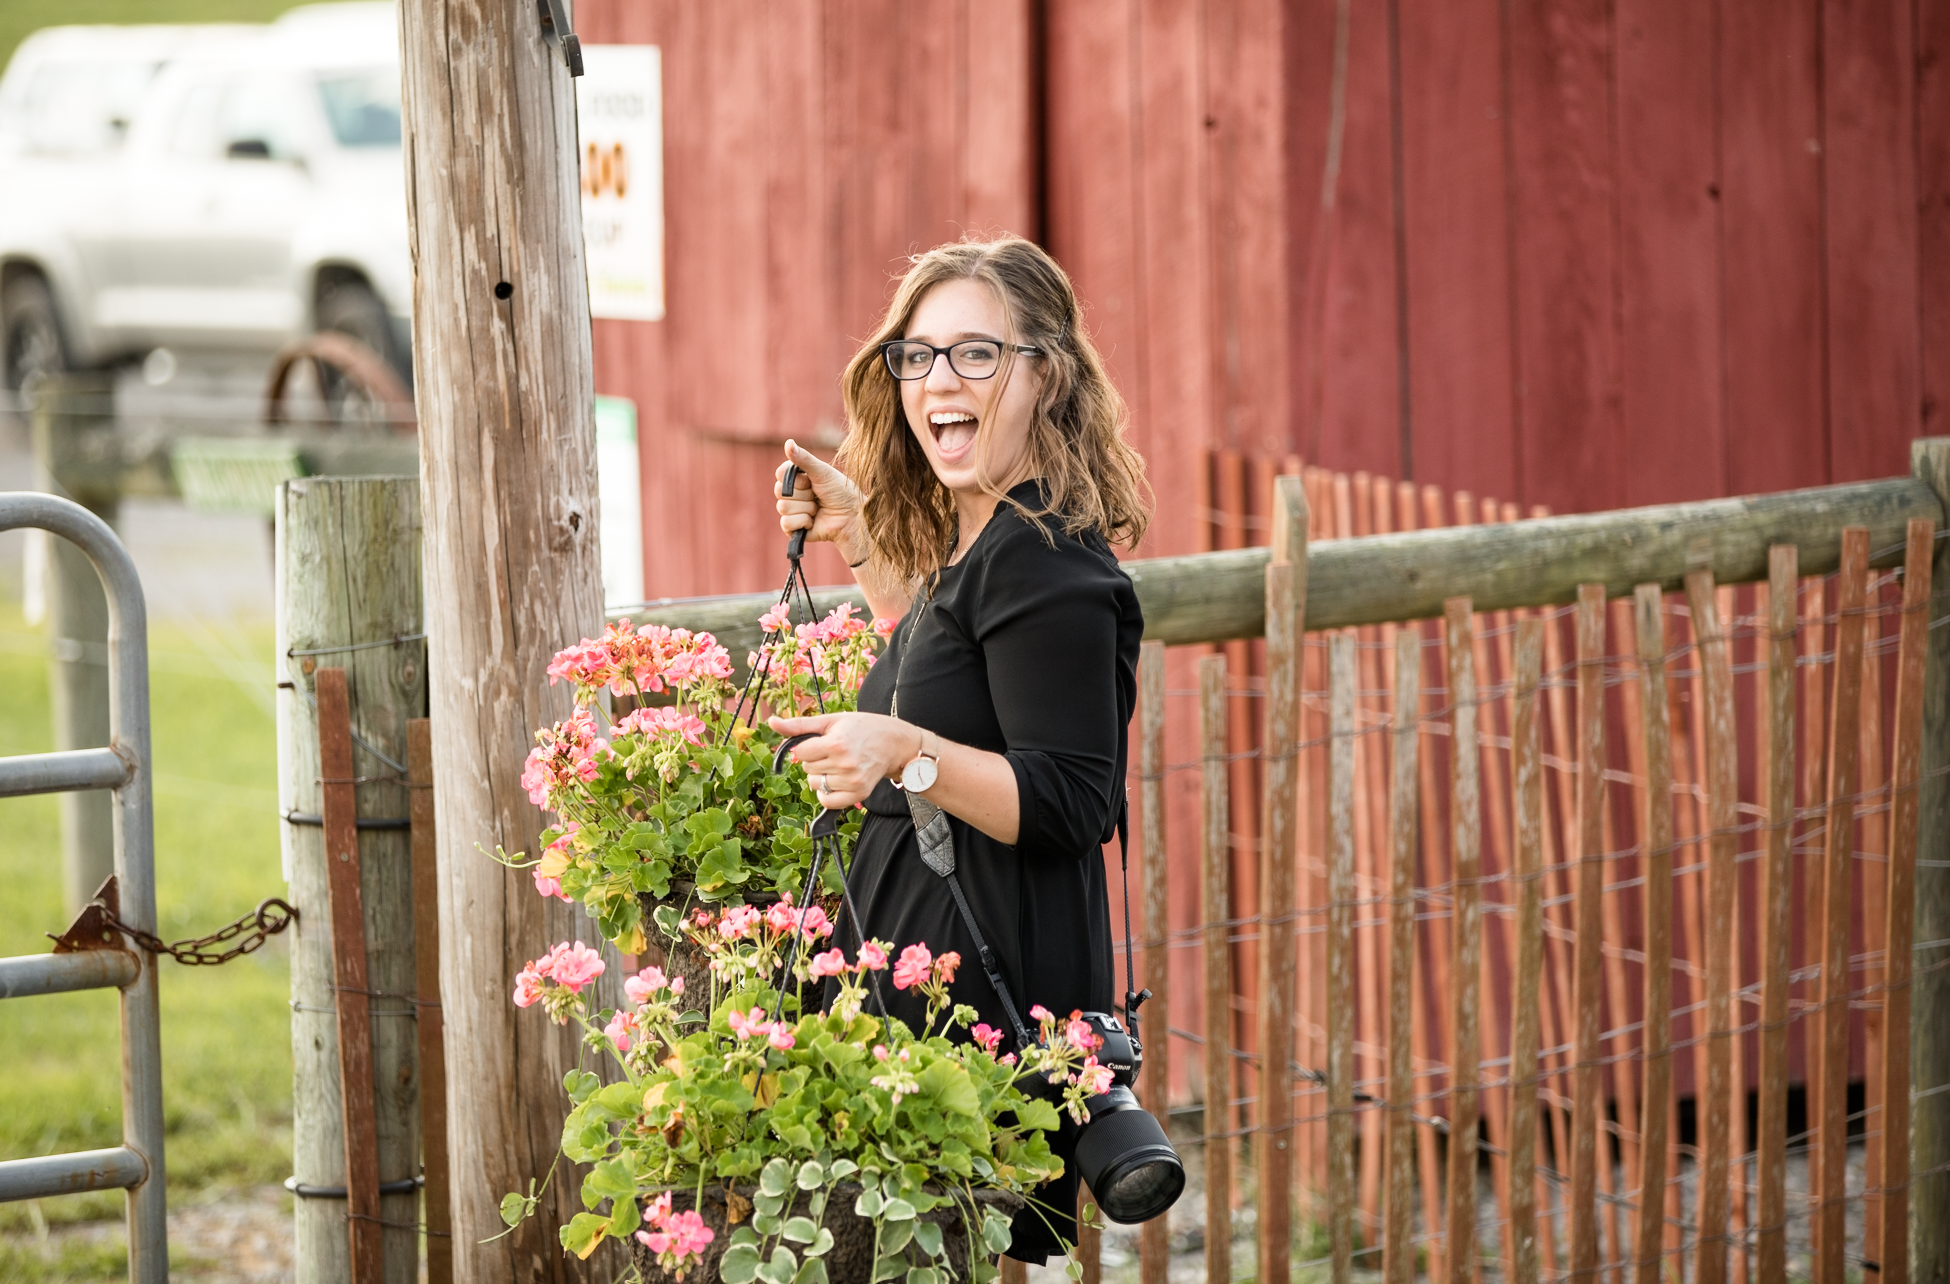 Totally stole these flower baskets for a shot! It was so worth it!!